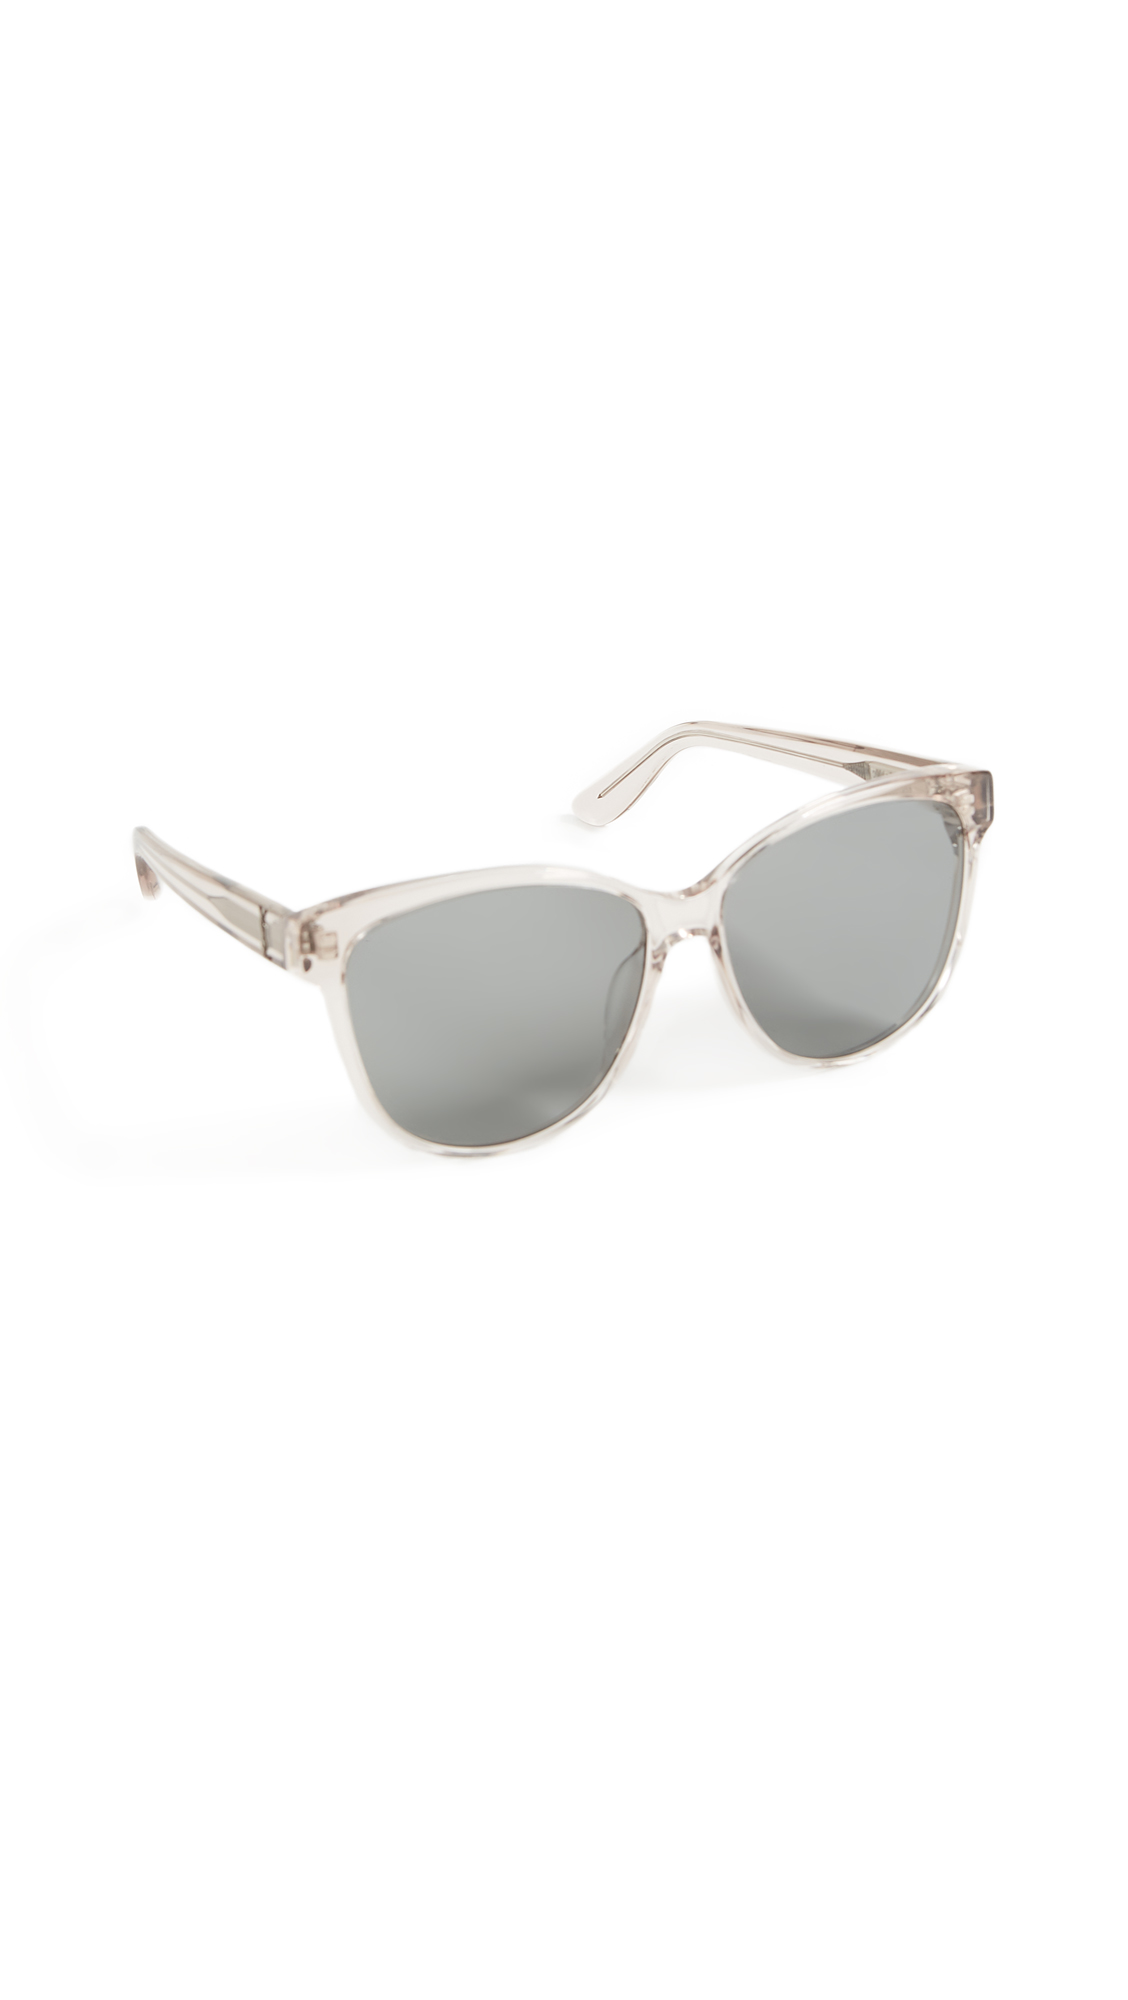 Saint Laurent Signature Classic Sunglasses In Transparent Powder/Grey